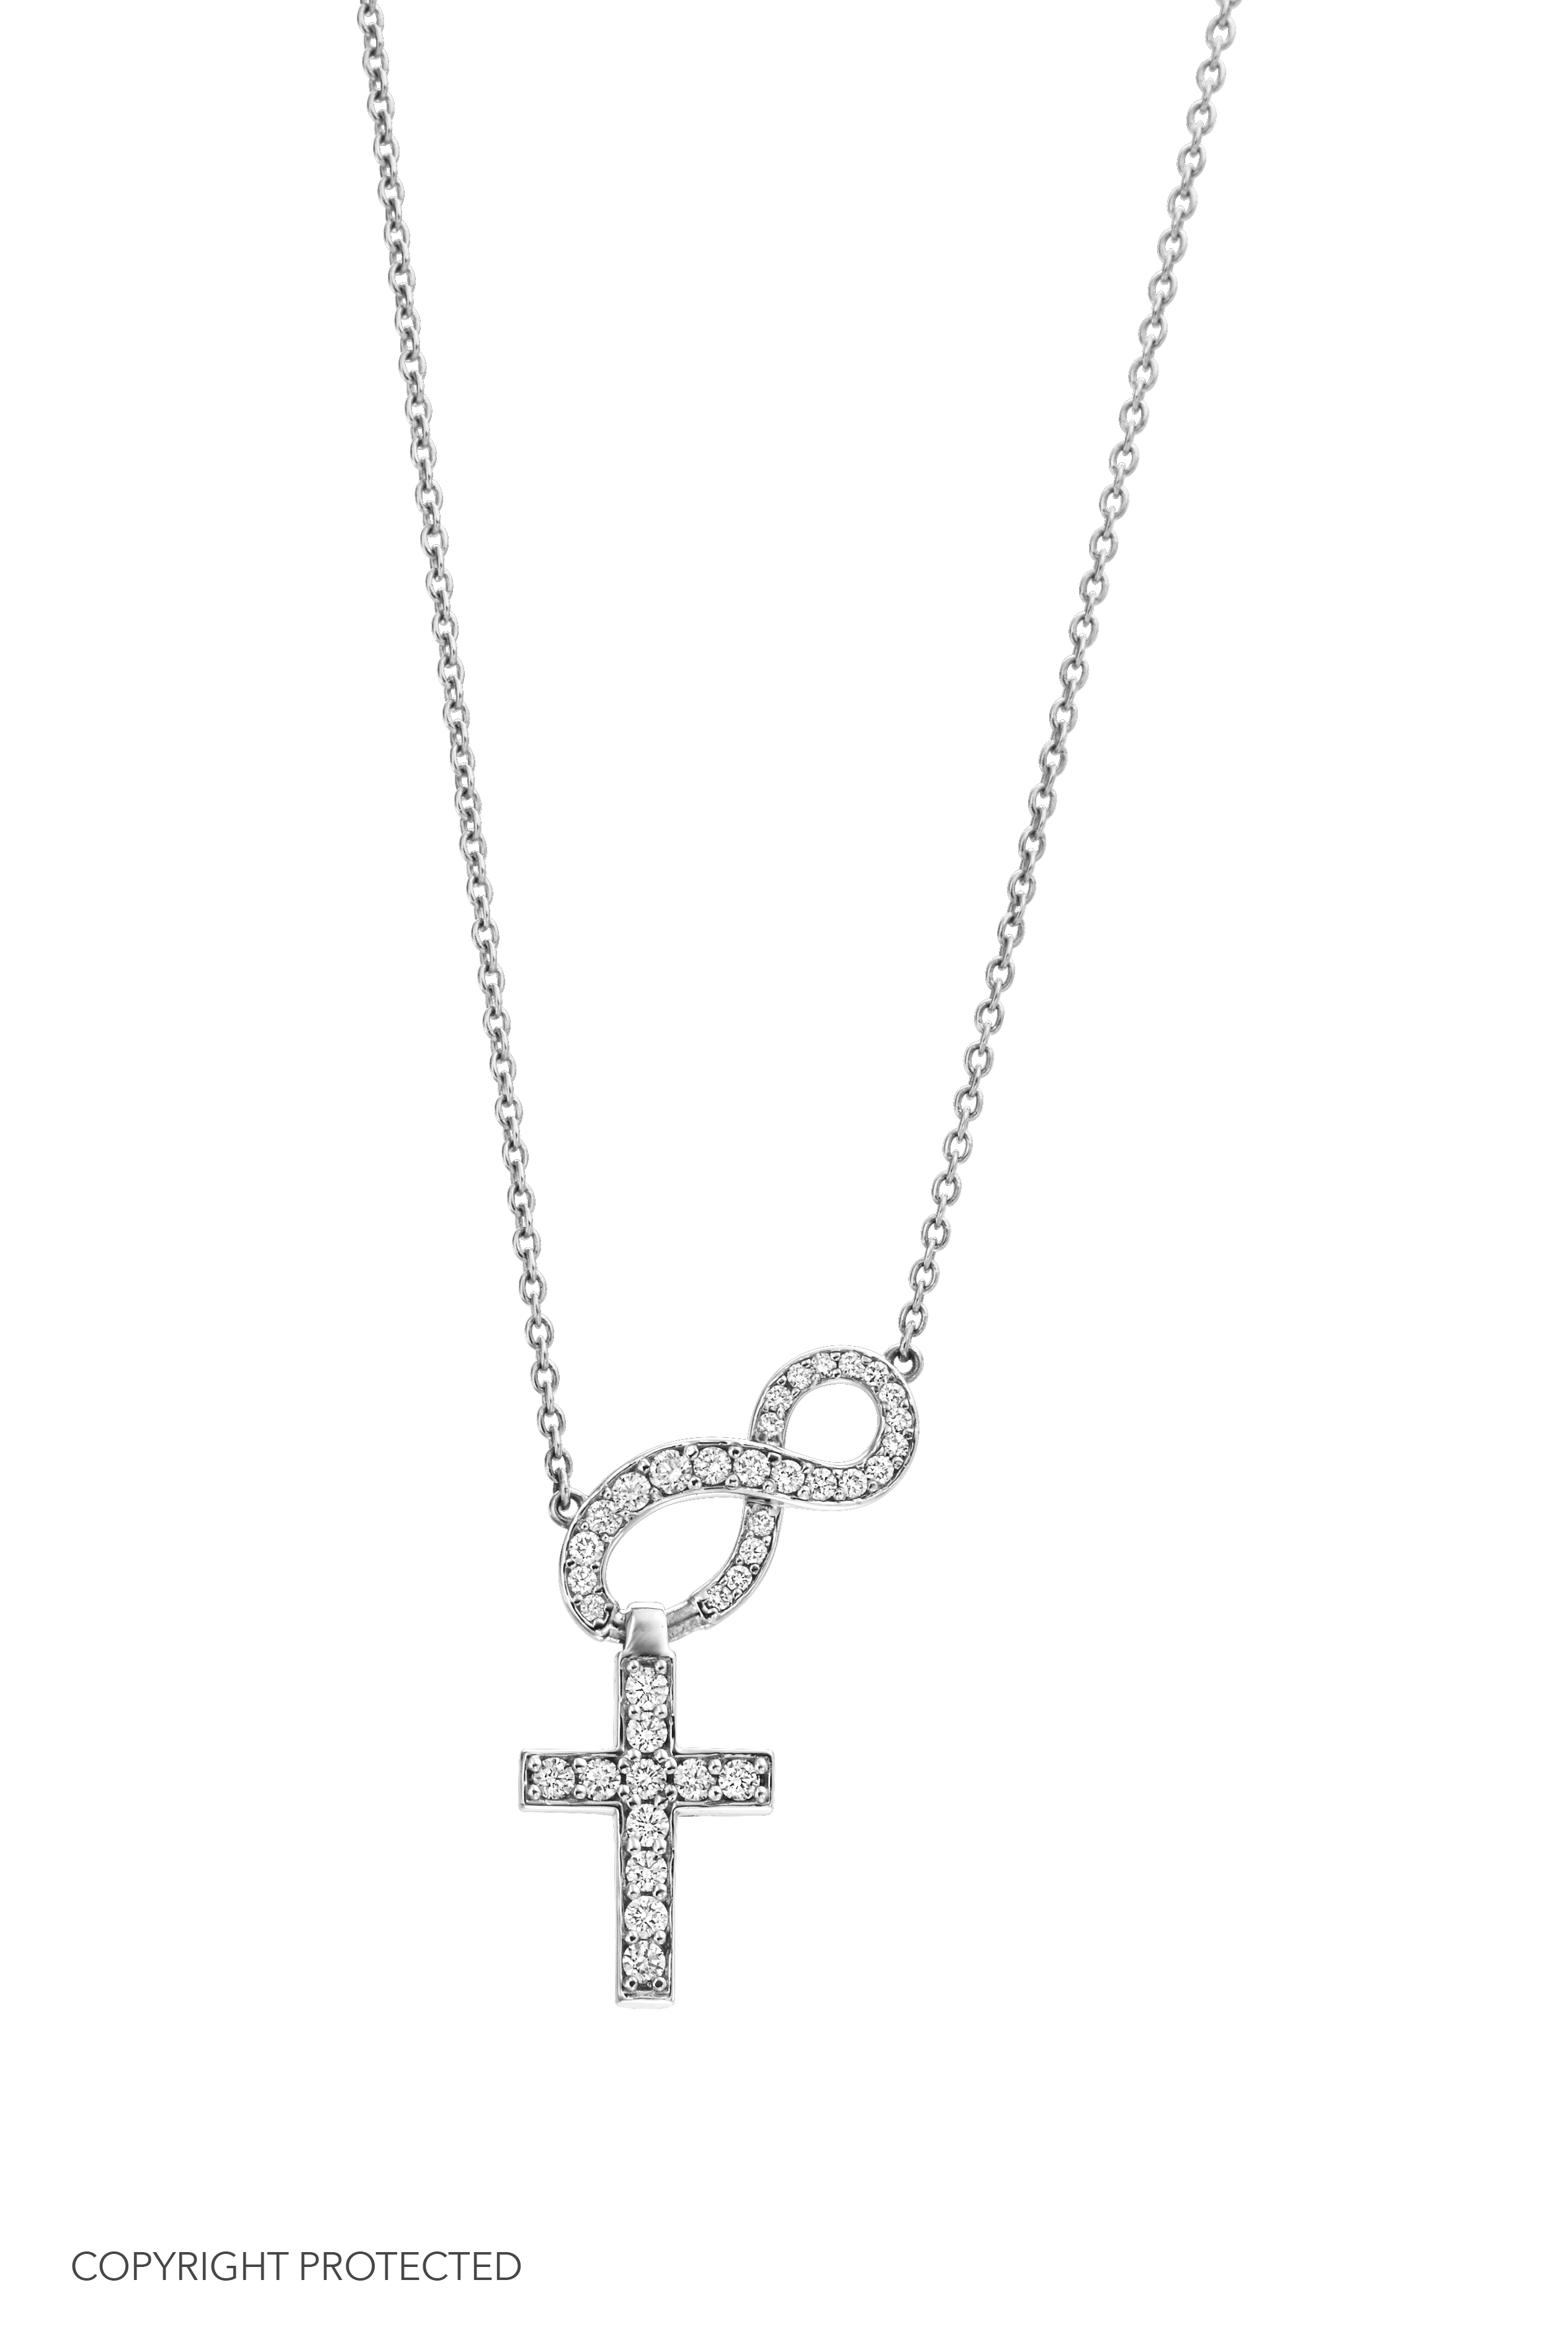 All Diamond Believer's Cross designed by David Gardner, 14K white gold